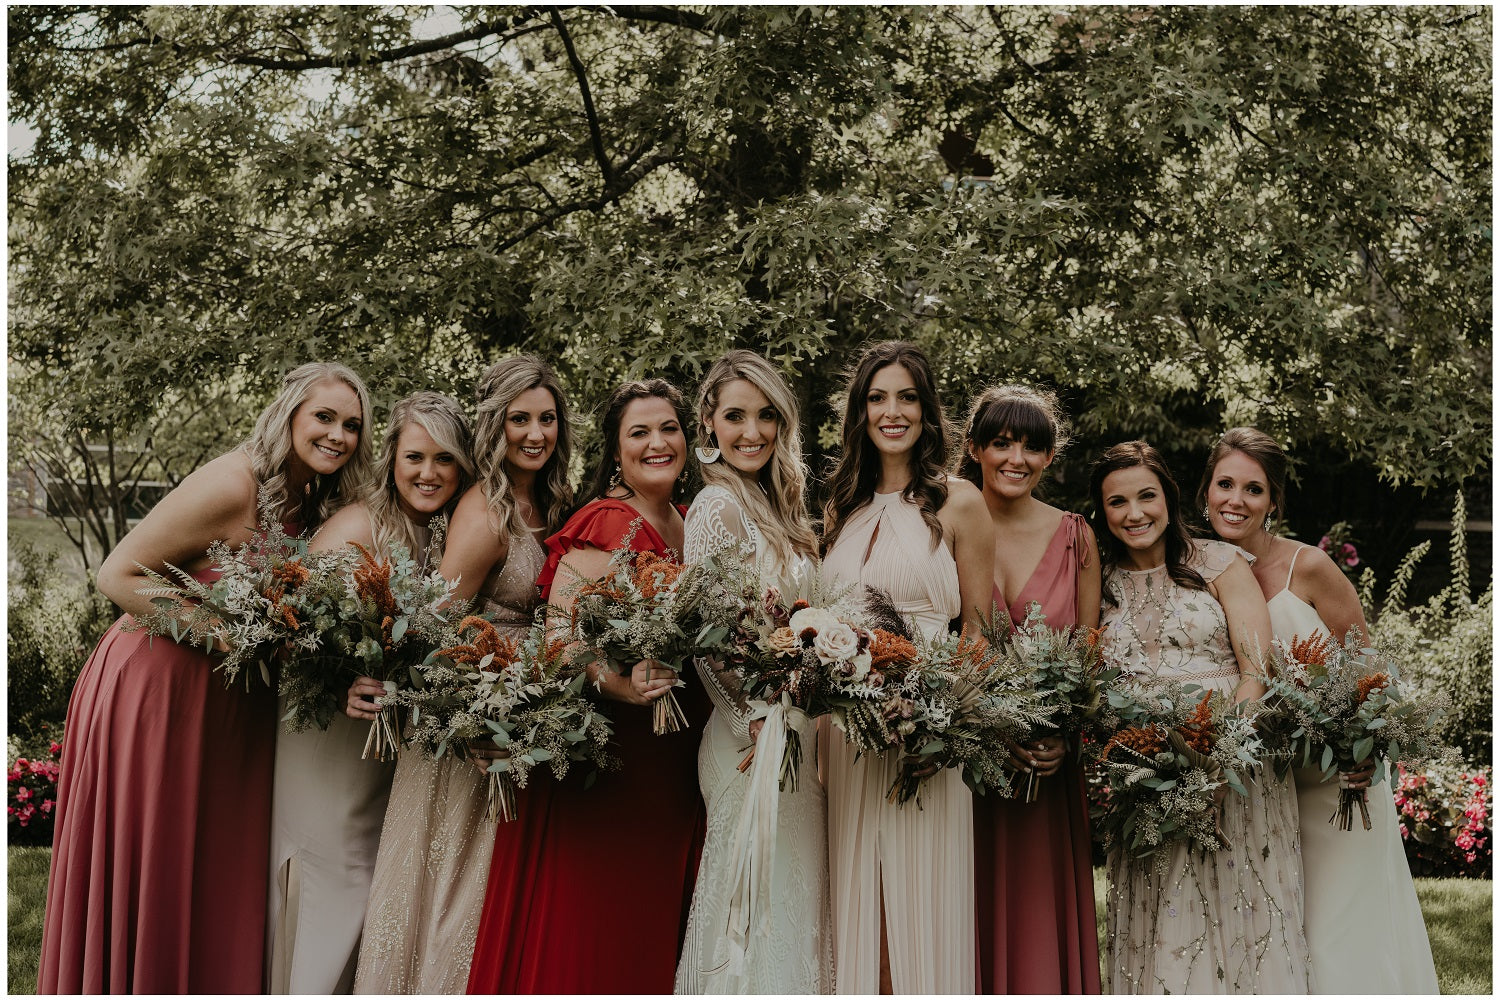 rust, taupe, and ivory wedding party with boho bouquets